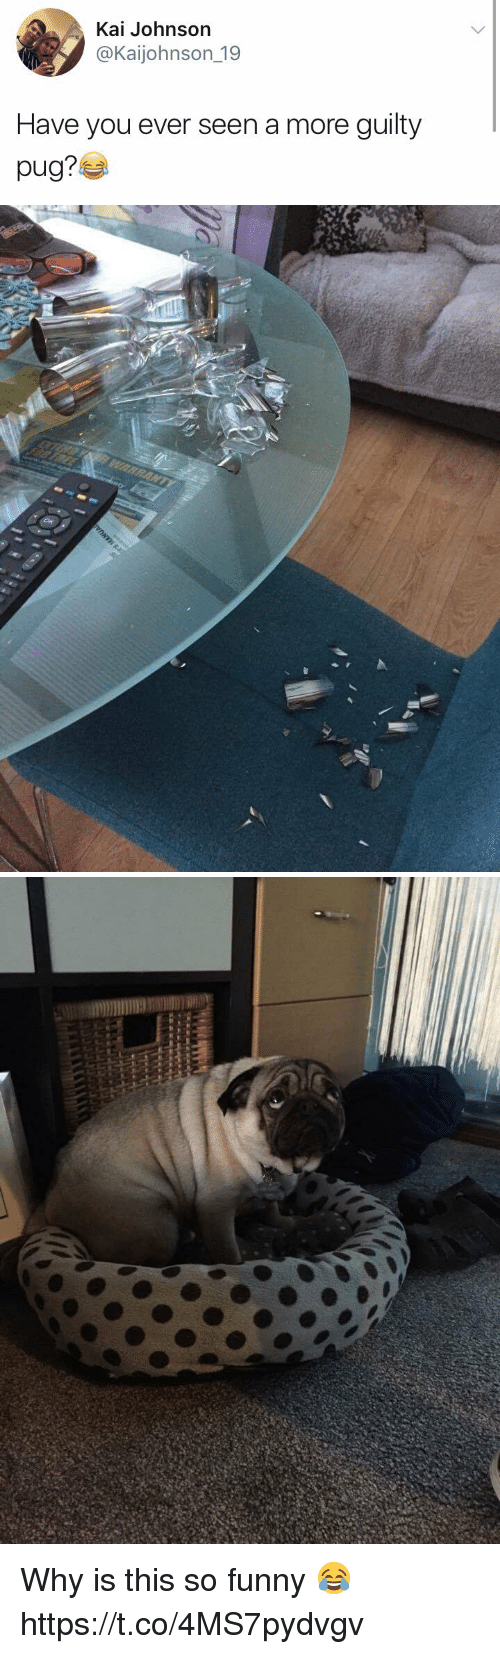 Pugly: Kai Johnson  @Kaijohnson 19  Have you ever seen a more guilty  pug? Why is this so funny 😂 https://t.co/4MS7pydvgv